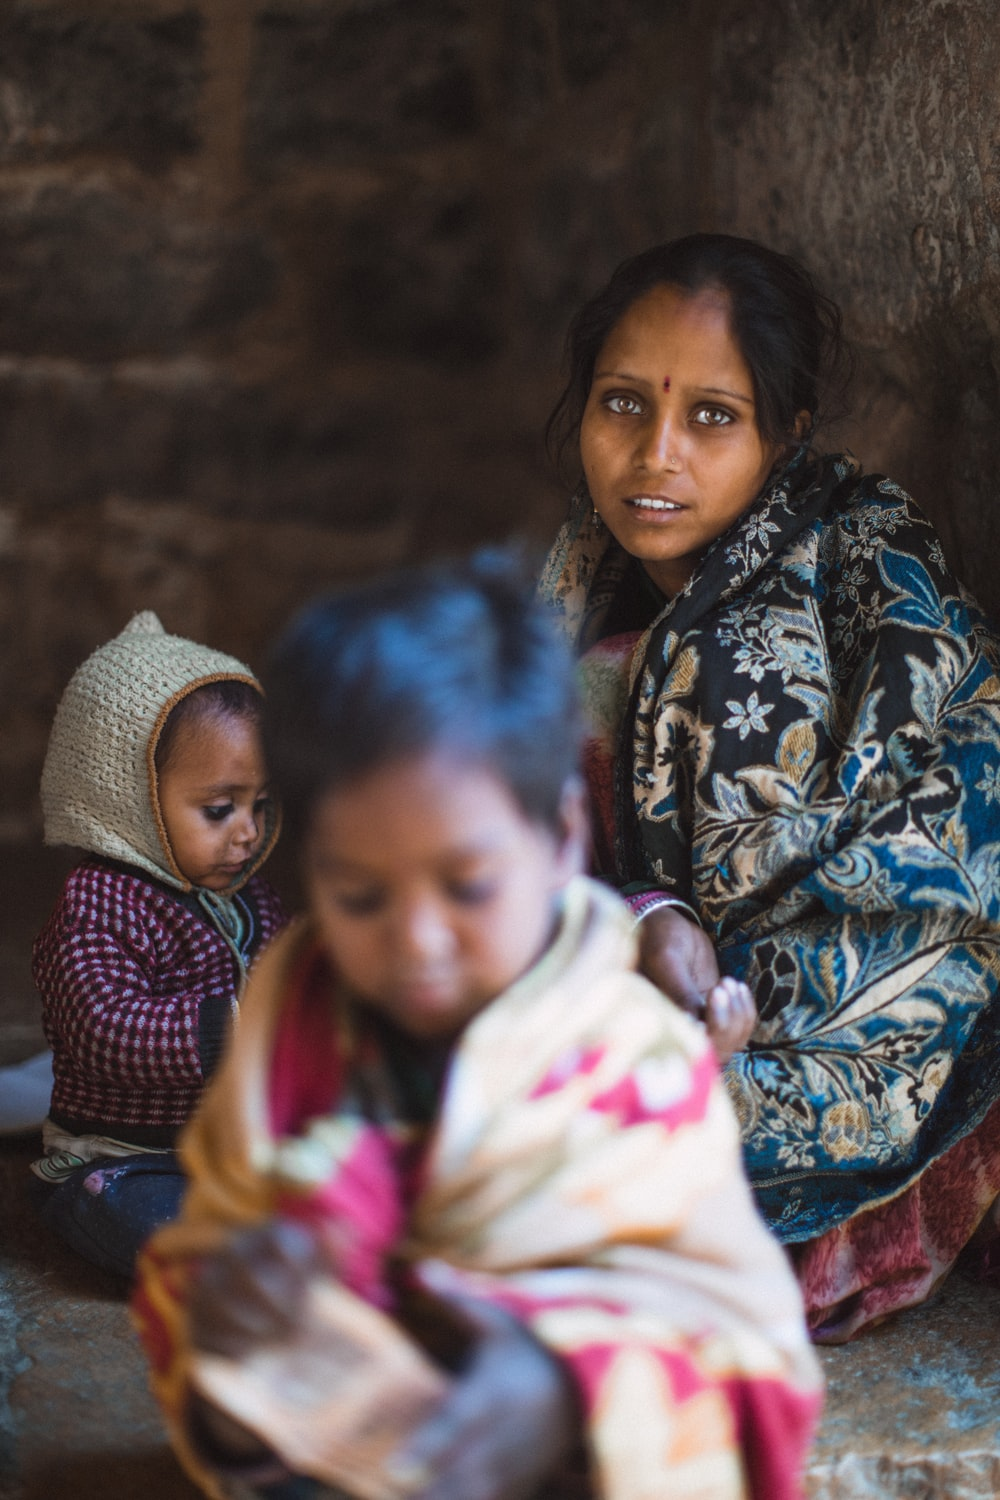 focus photography of woman sitting besides two toddlers